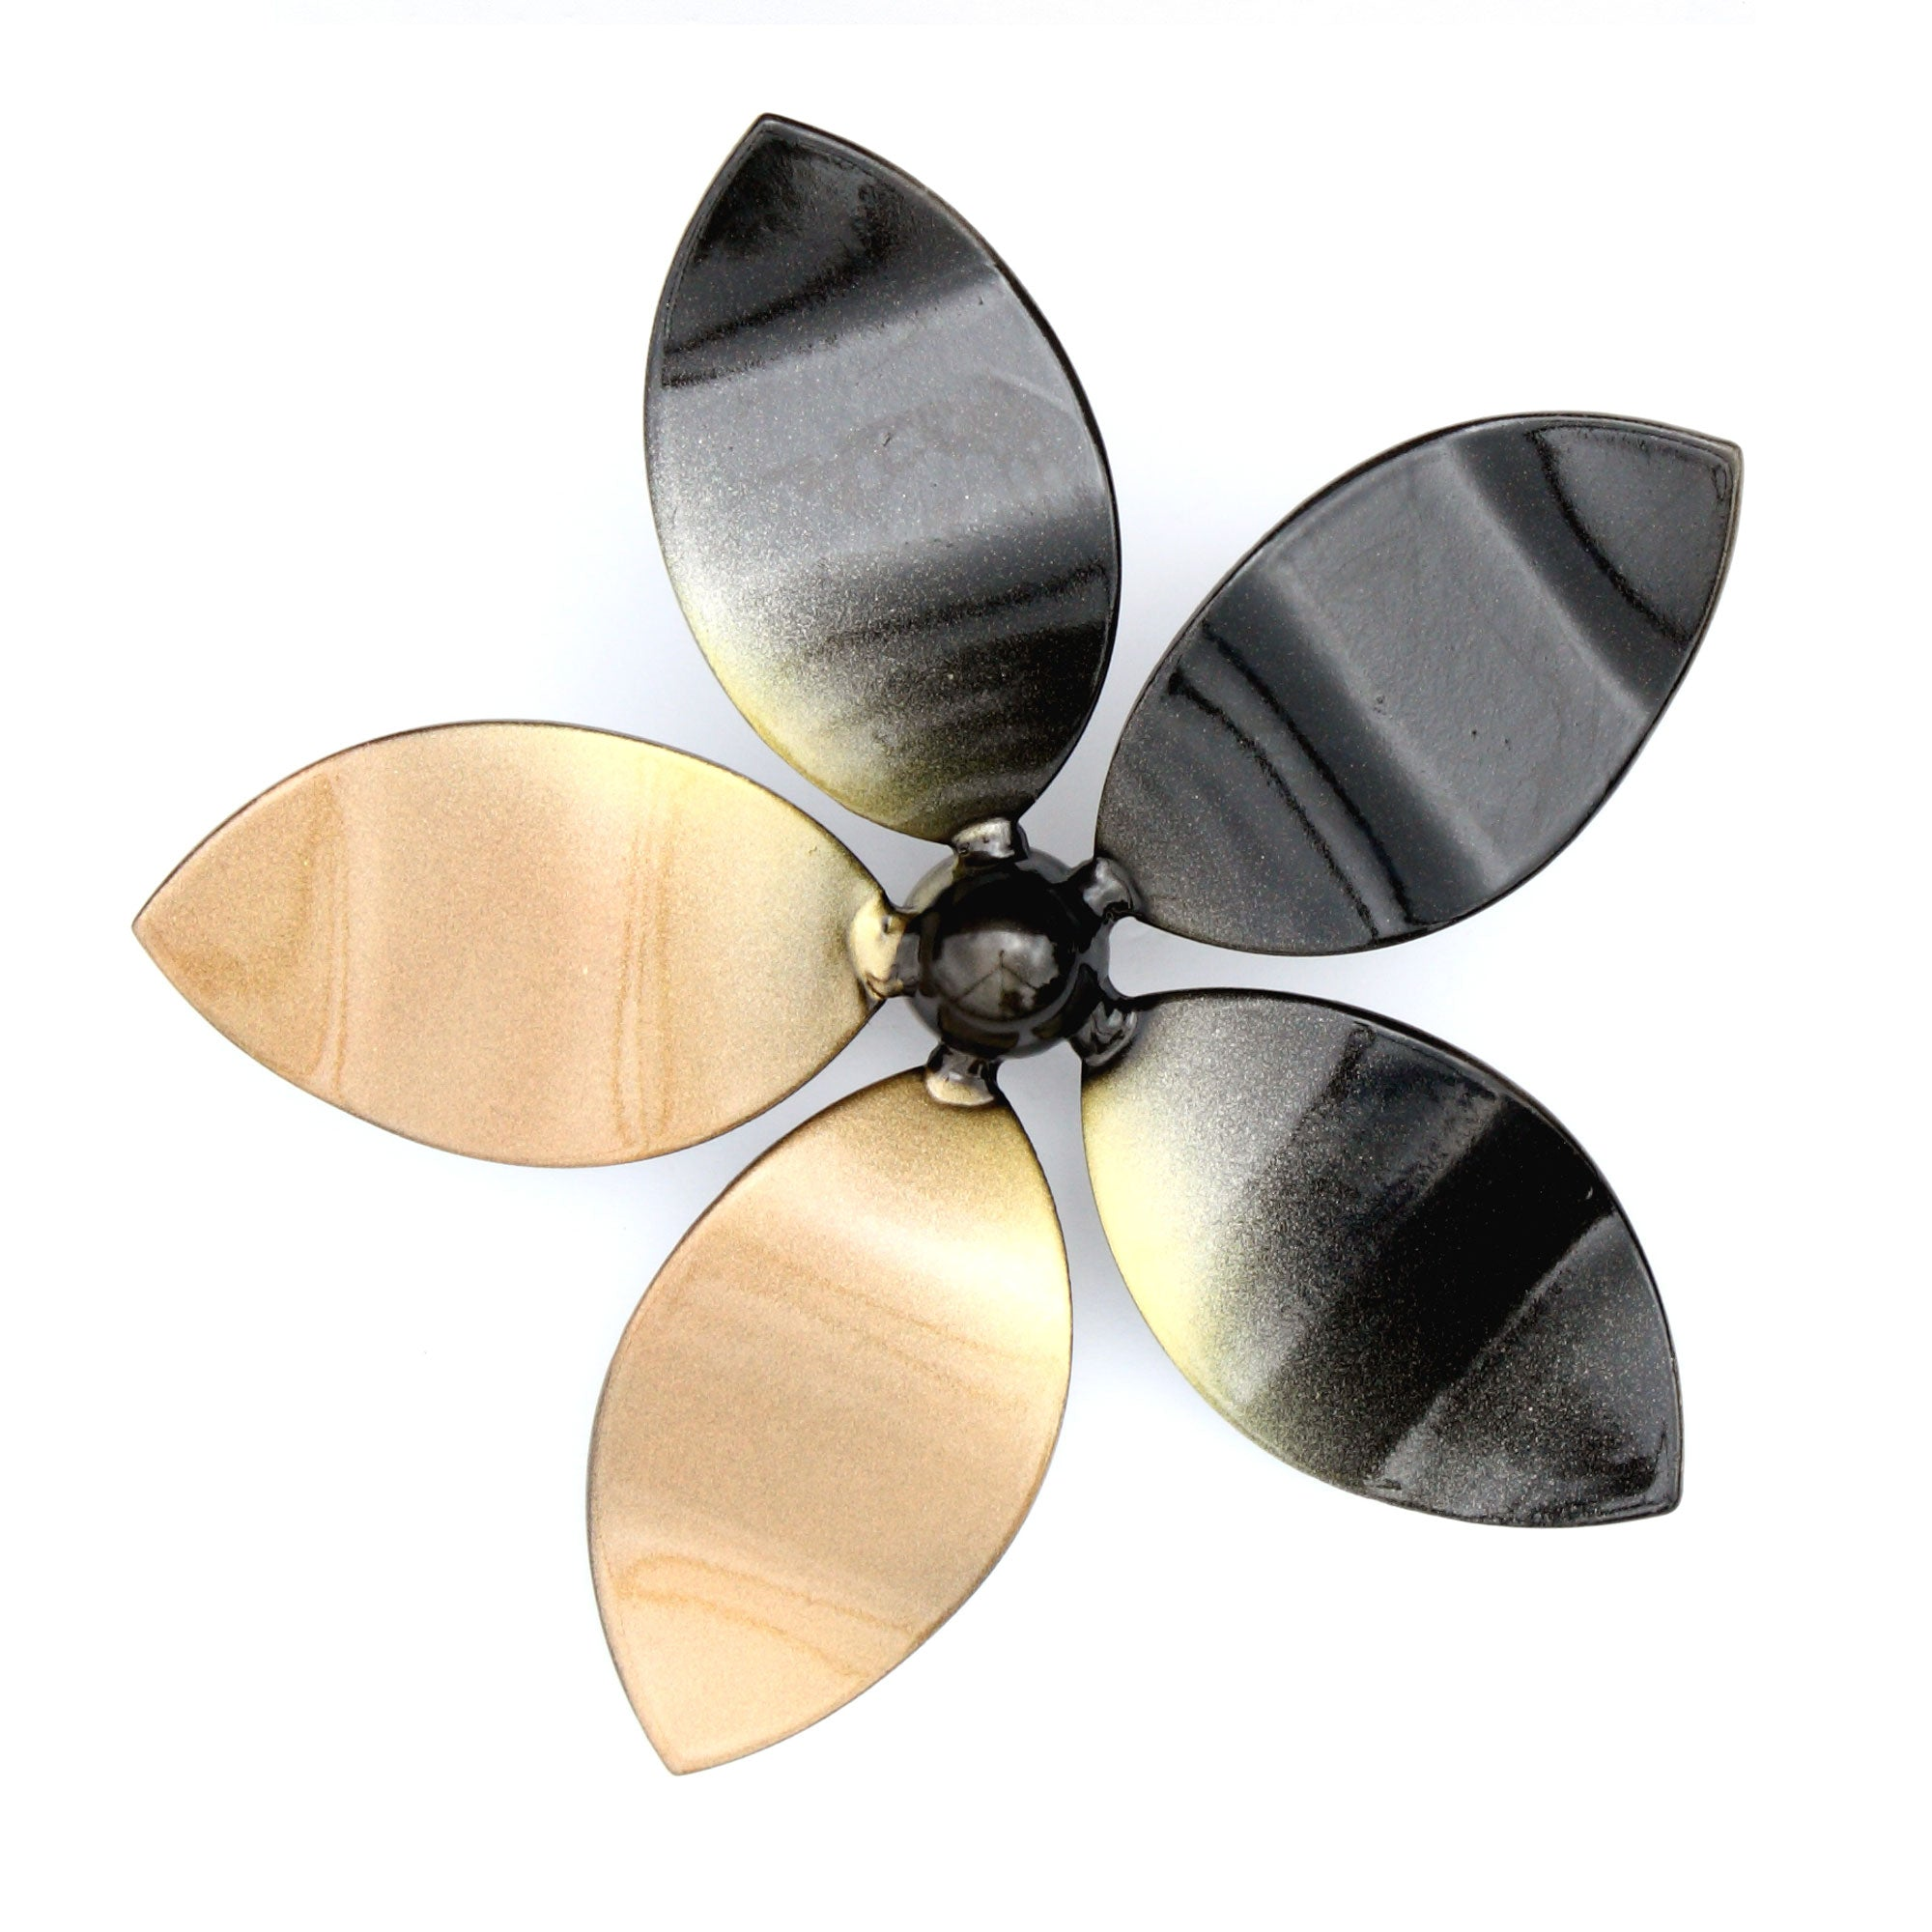 Home Decor - Extra Large Five Flower Vine - Metal Wall Art